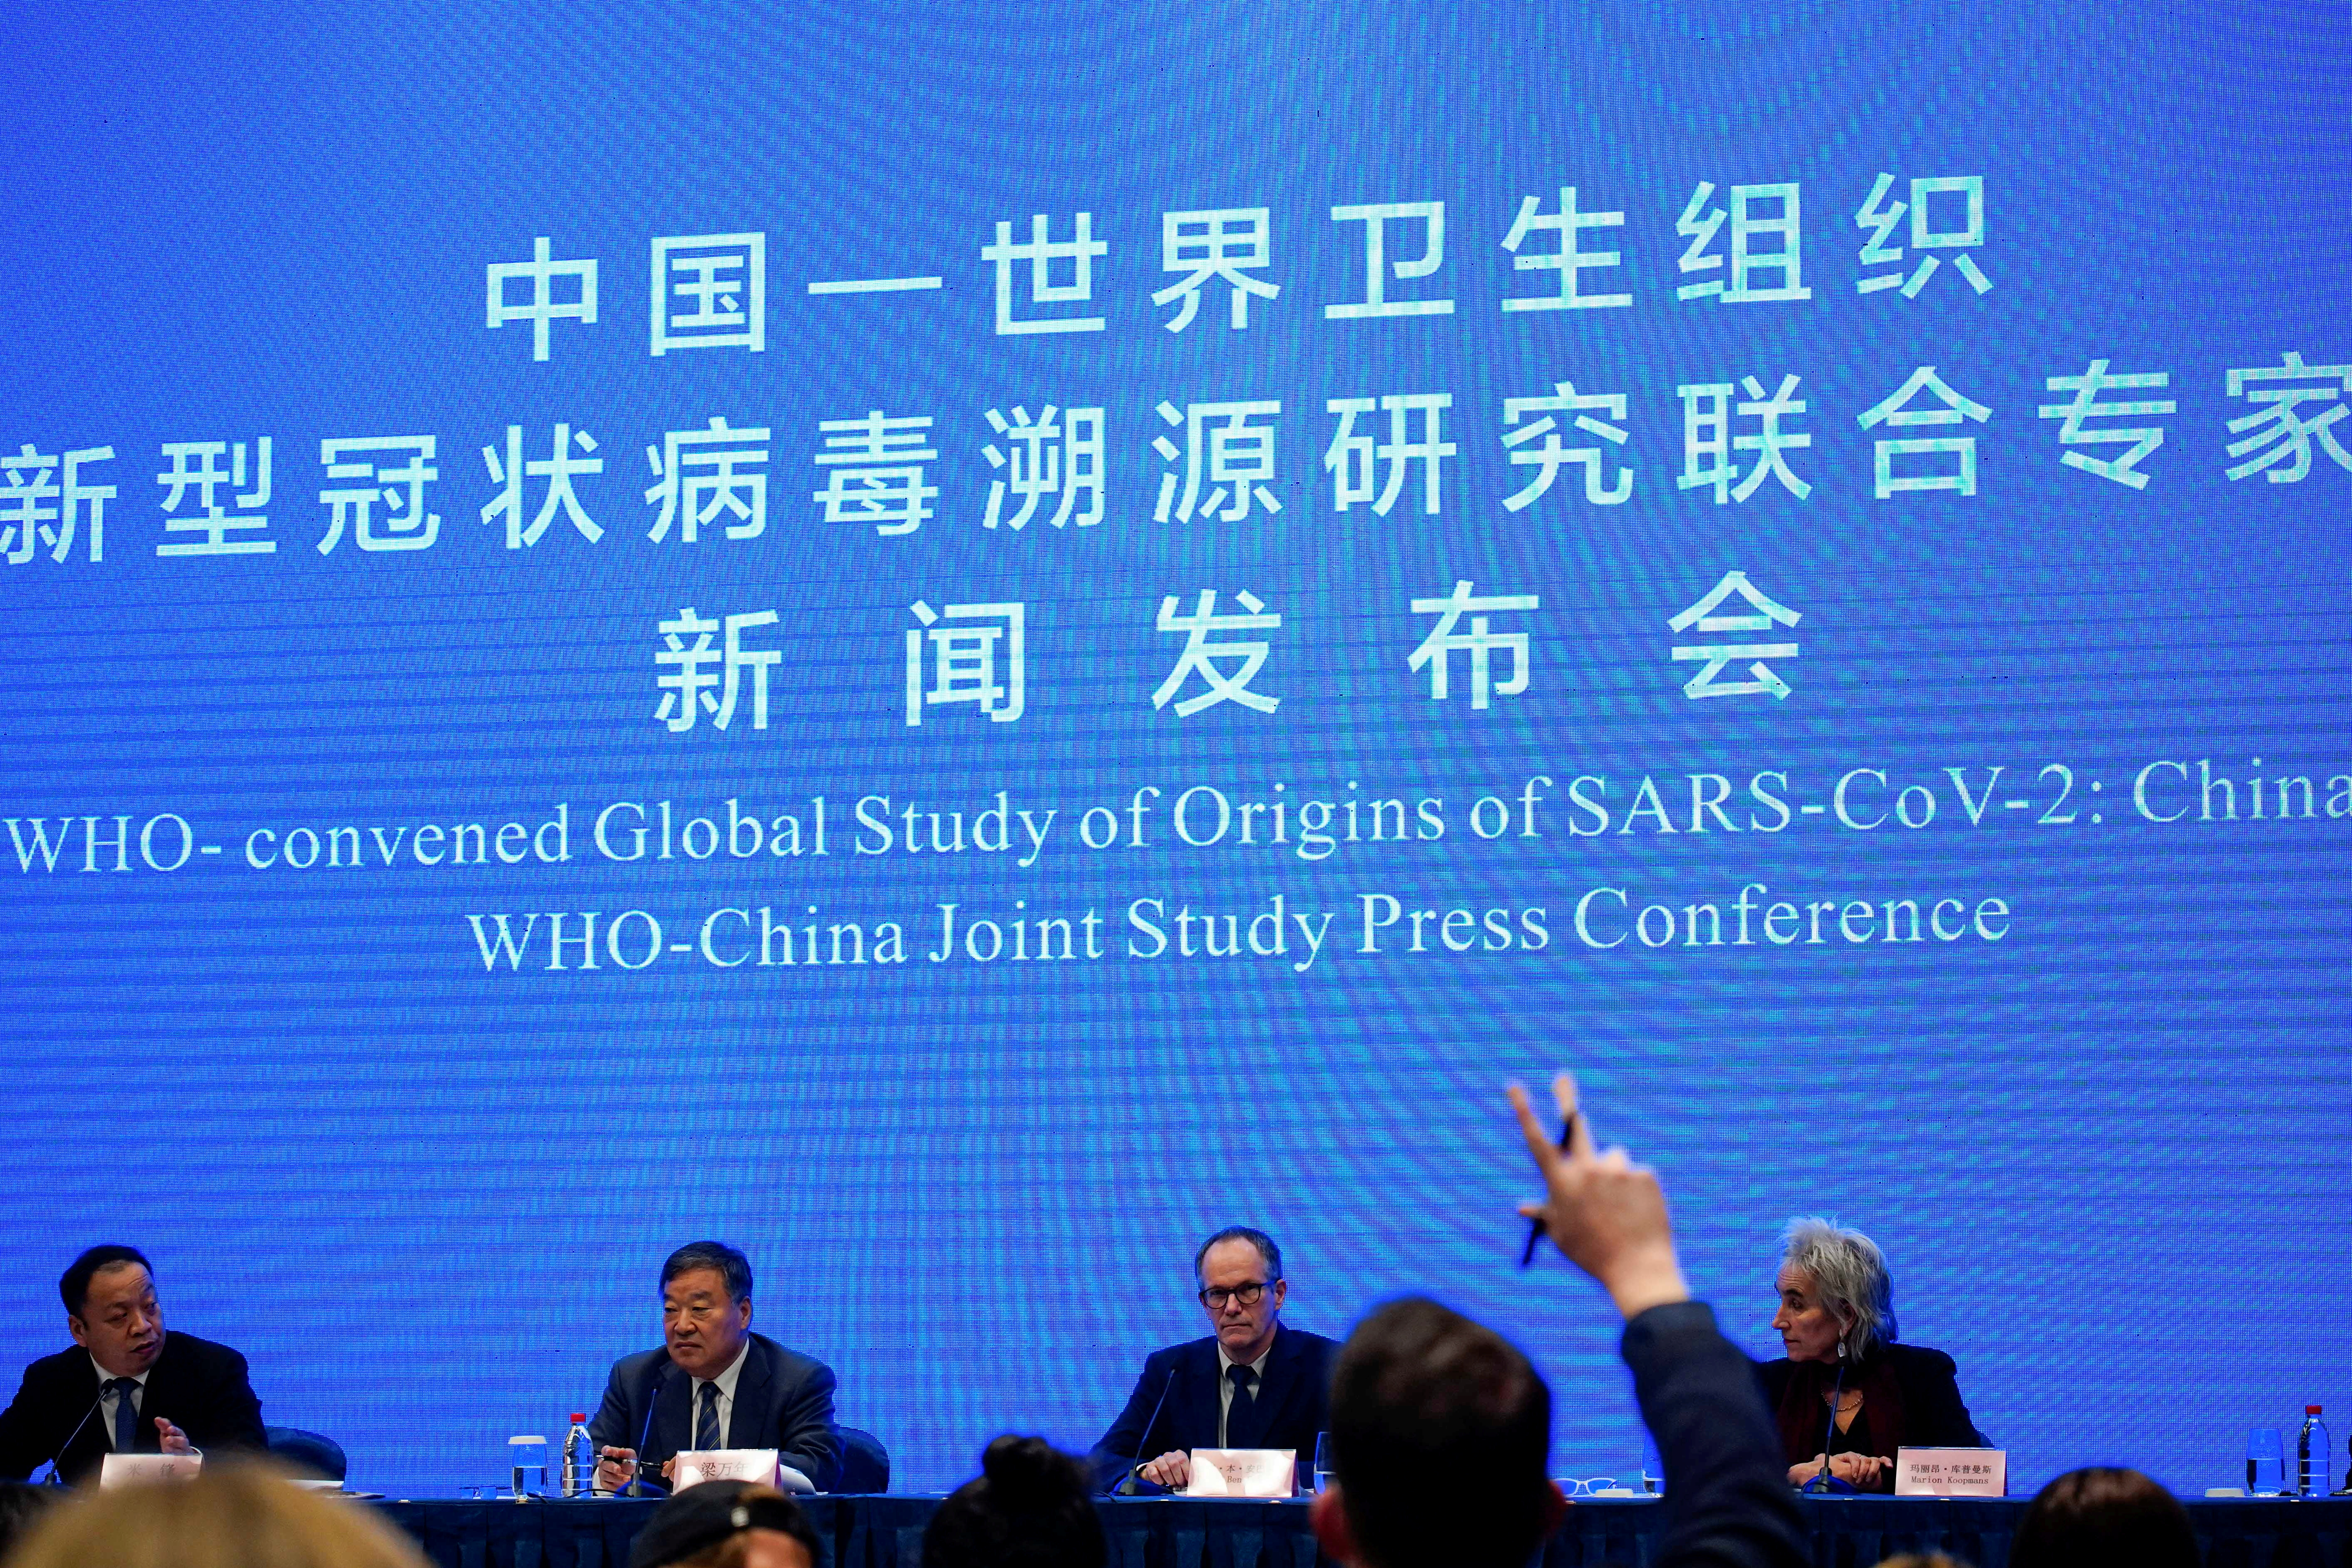 Peter Ben Embarek, a member of the World Health Organization (WHO) team tasked with investigating the origins of the coronavirus disease (COVID-19), attends the WHO-China joint study news conference at a hotel in Wuhan, Hubei province, China February 9, 2021. REUTERS/Aly Song/File Photo